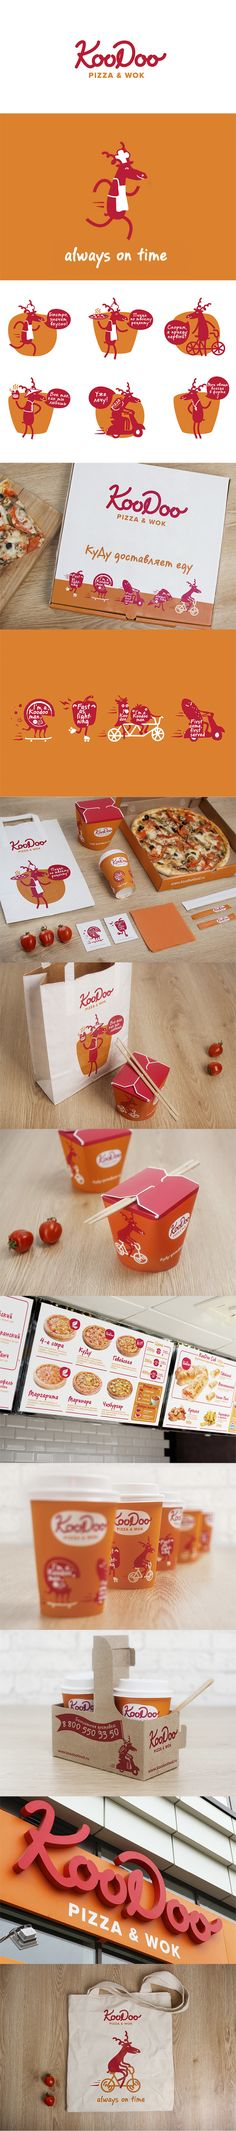 KooDoo Pizza  Wok what a combination! Фирменный стиль © Люда Гальченко. Let's eat #identity #packaging Branding PD